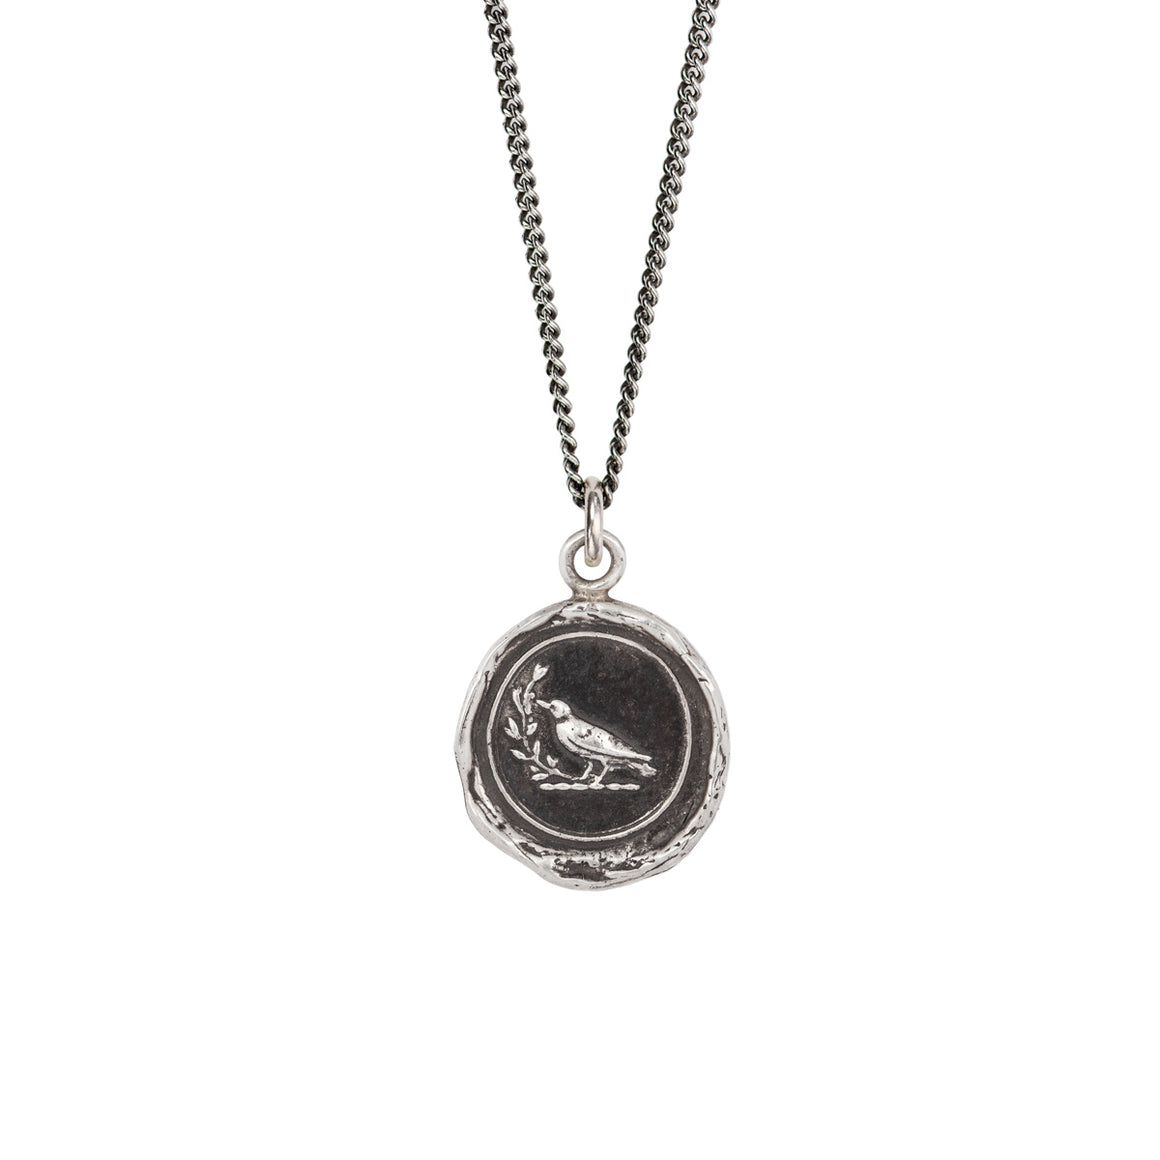 PYRRHA CREATIVITY TALISMAN NECKLACE